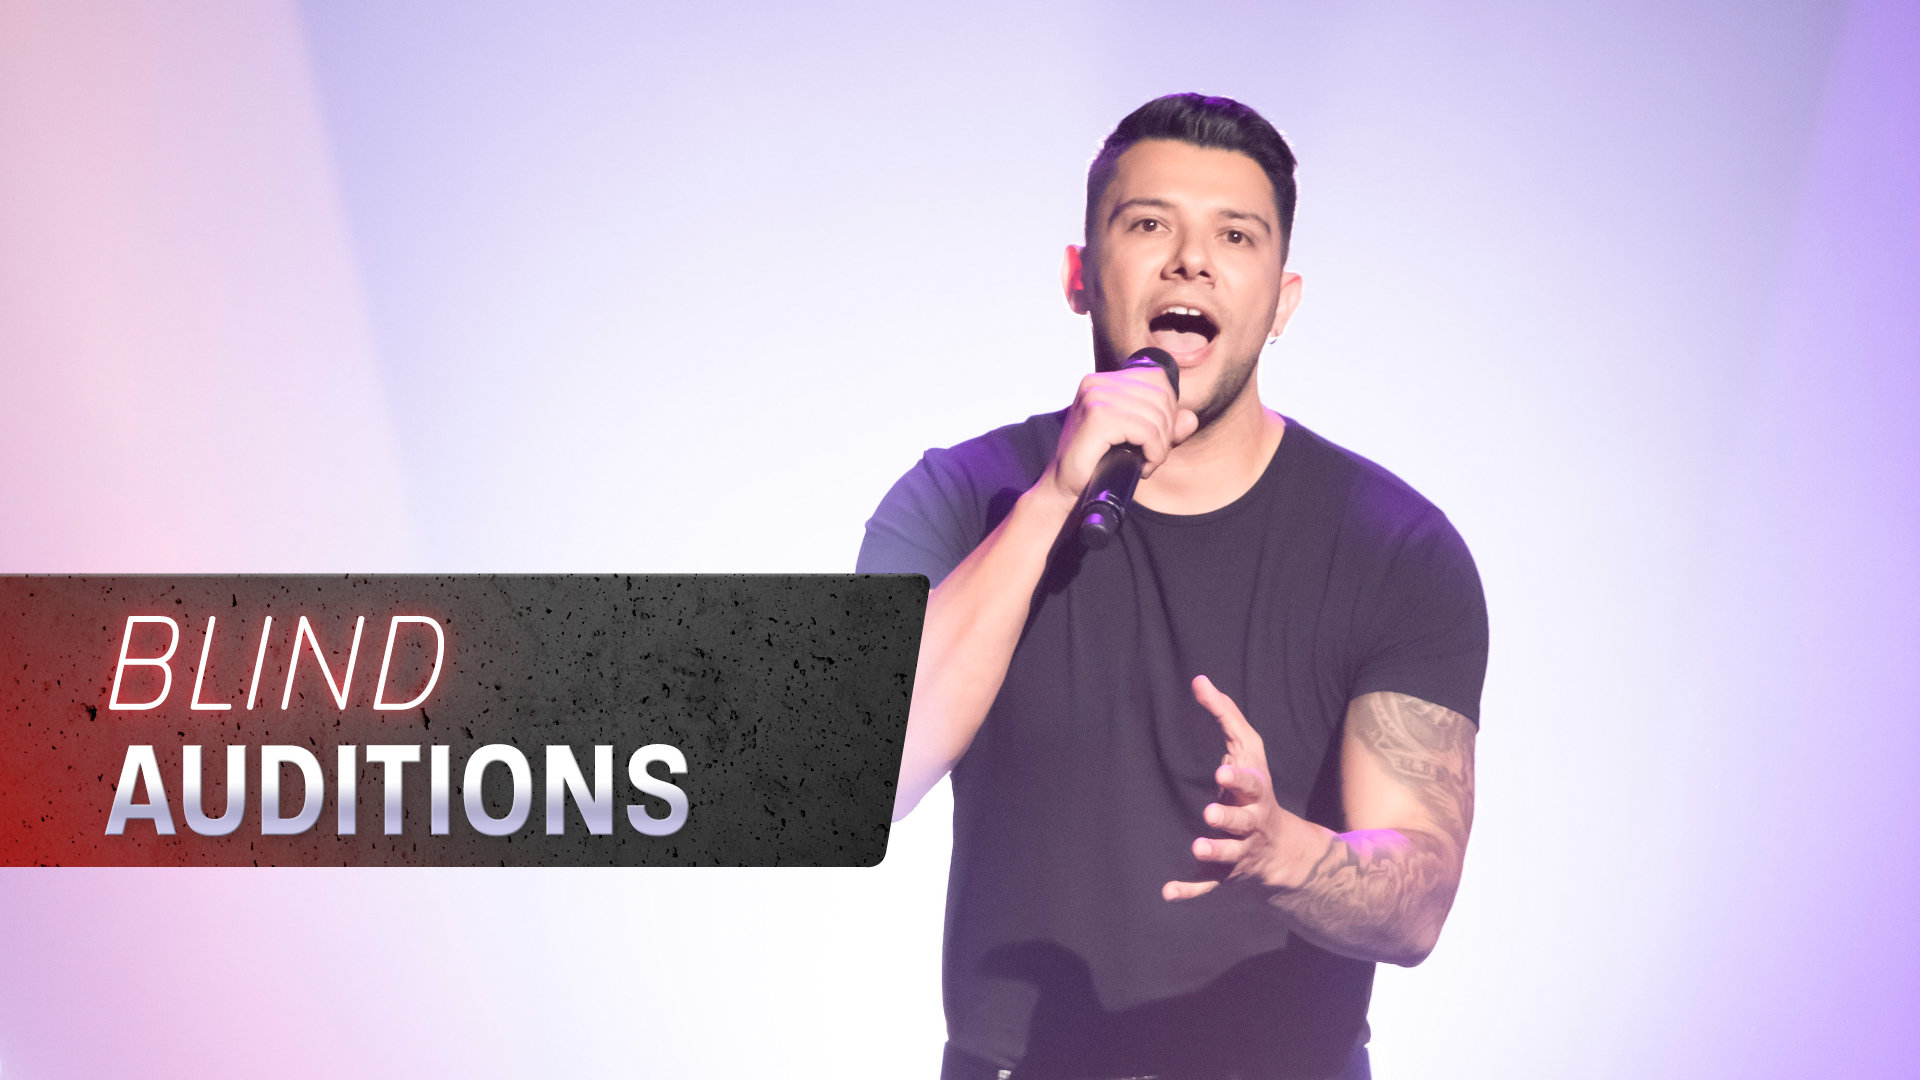 Blind Auditions: Ricky Muscat 'Maria Maria'